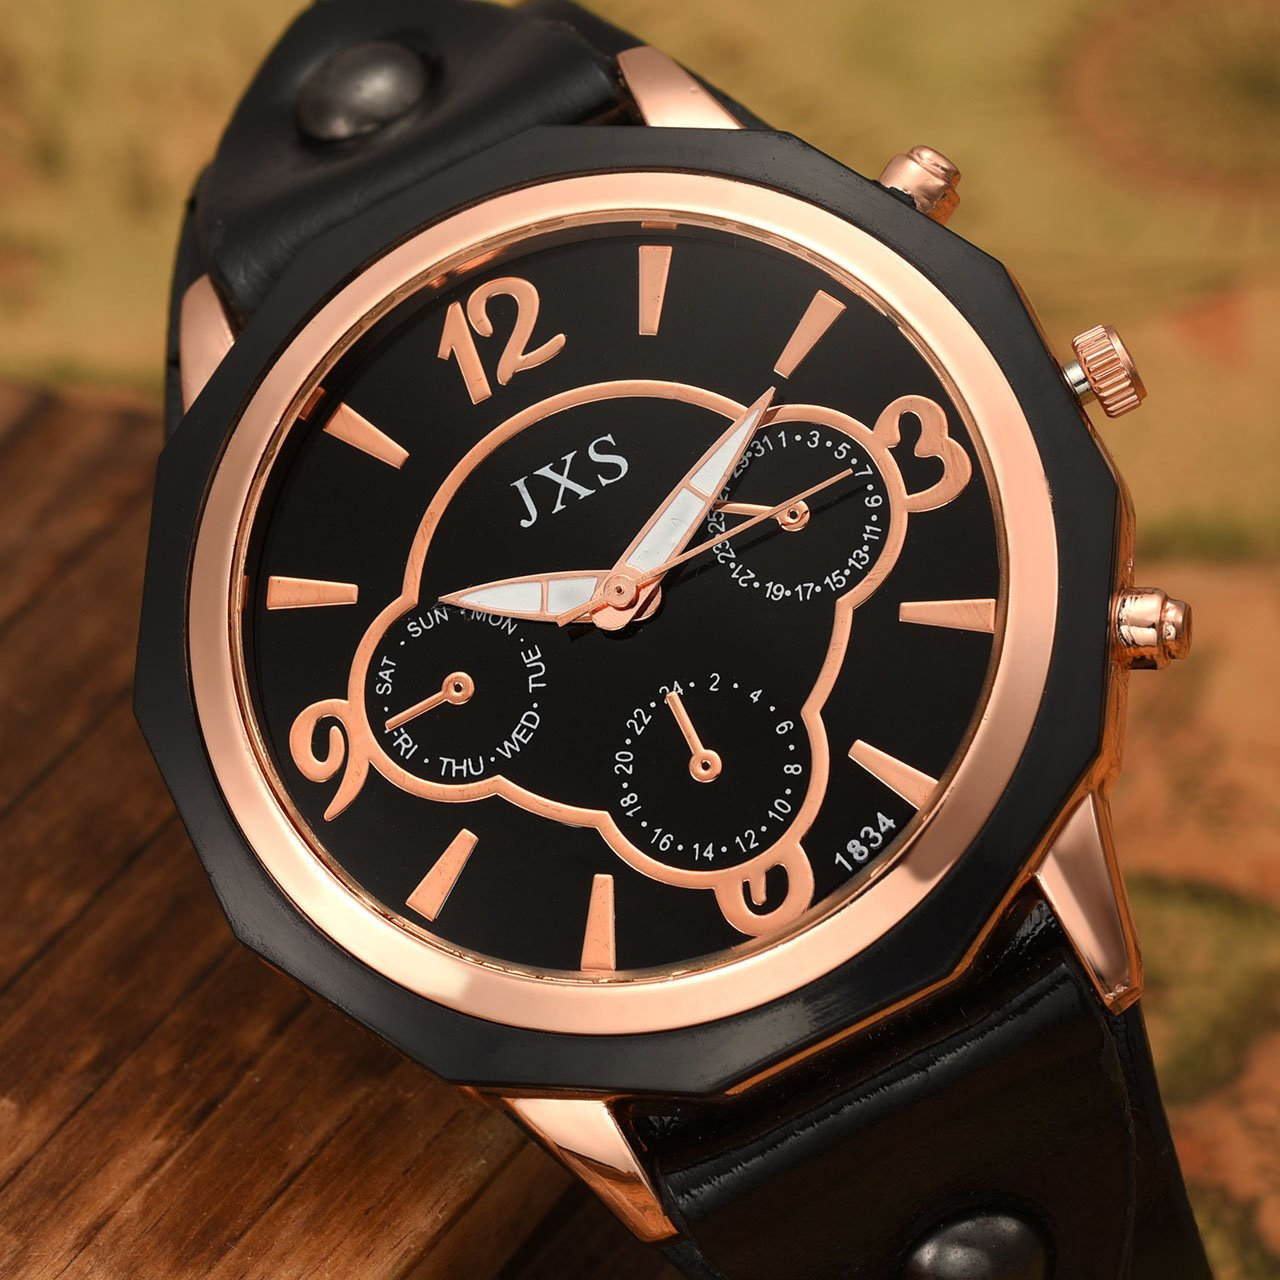 Top Plaza Womens Mens Fashion Rose Gold Tone Leather Analog Quartz Wrist Watch Arabic Numerals Big Face Casual Sport Watch - Black by Top Plaza (Image #5)